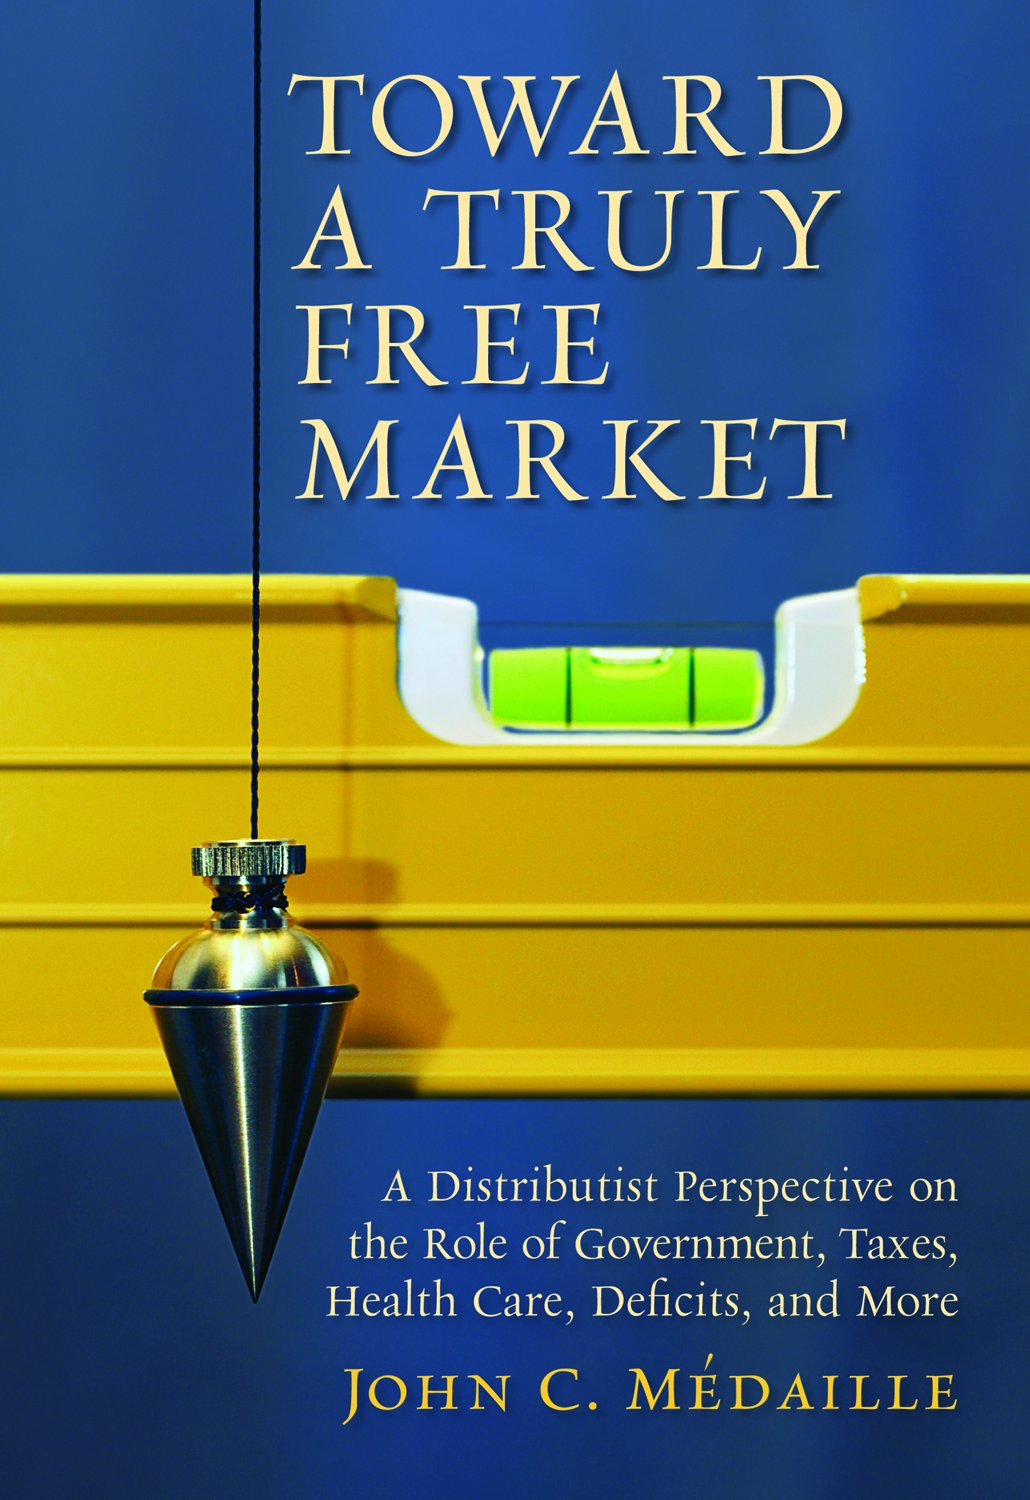 Toward a Truly Free Market: A Distributist Perspective on the Role of Government, Taxes, Health Care, Deficits, and More (Culture of Enterprise)